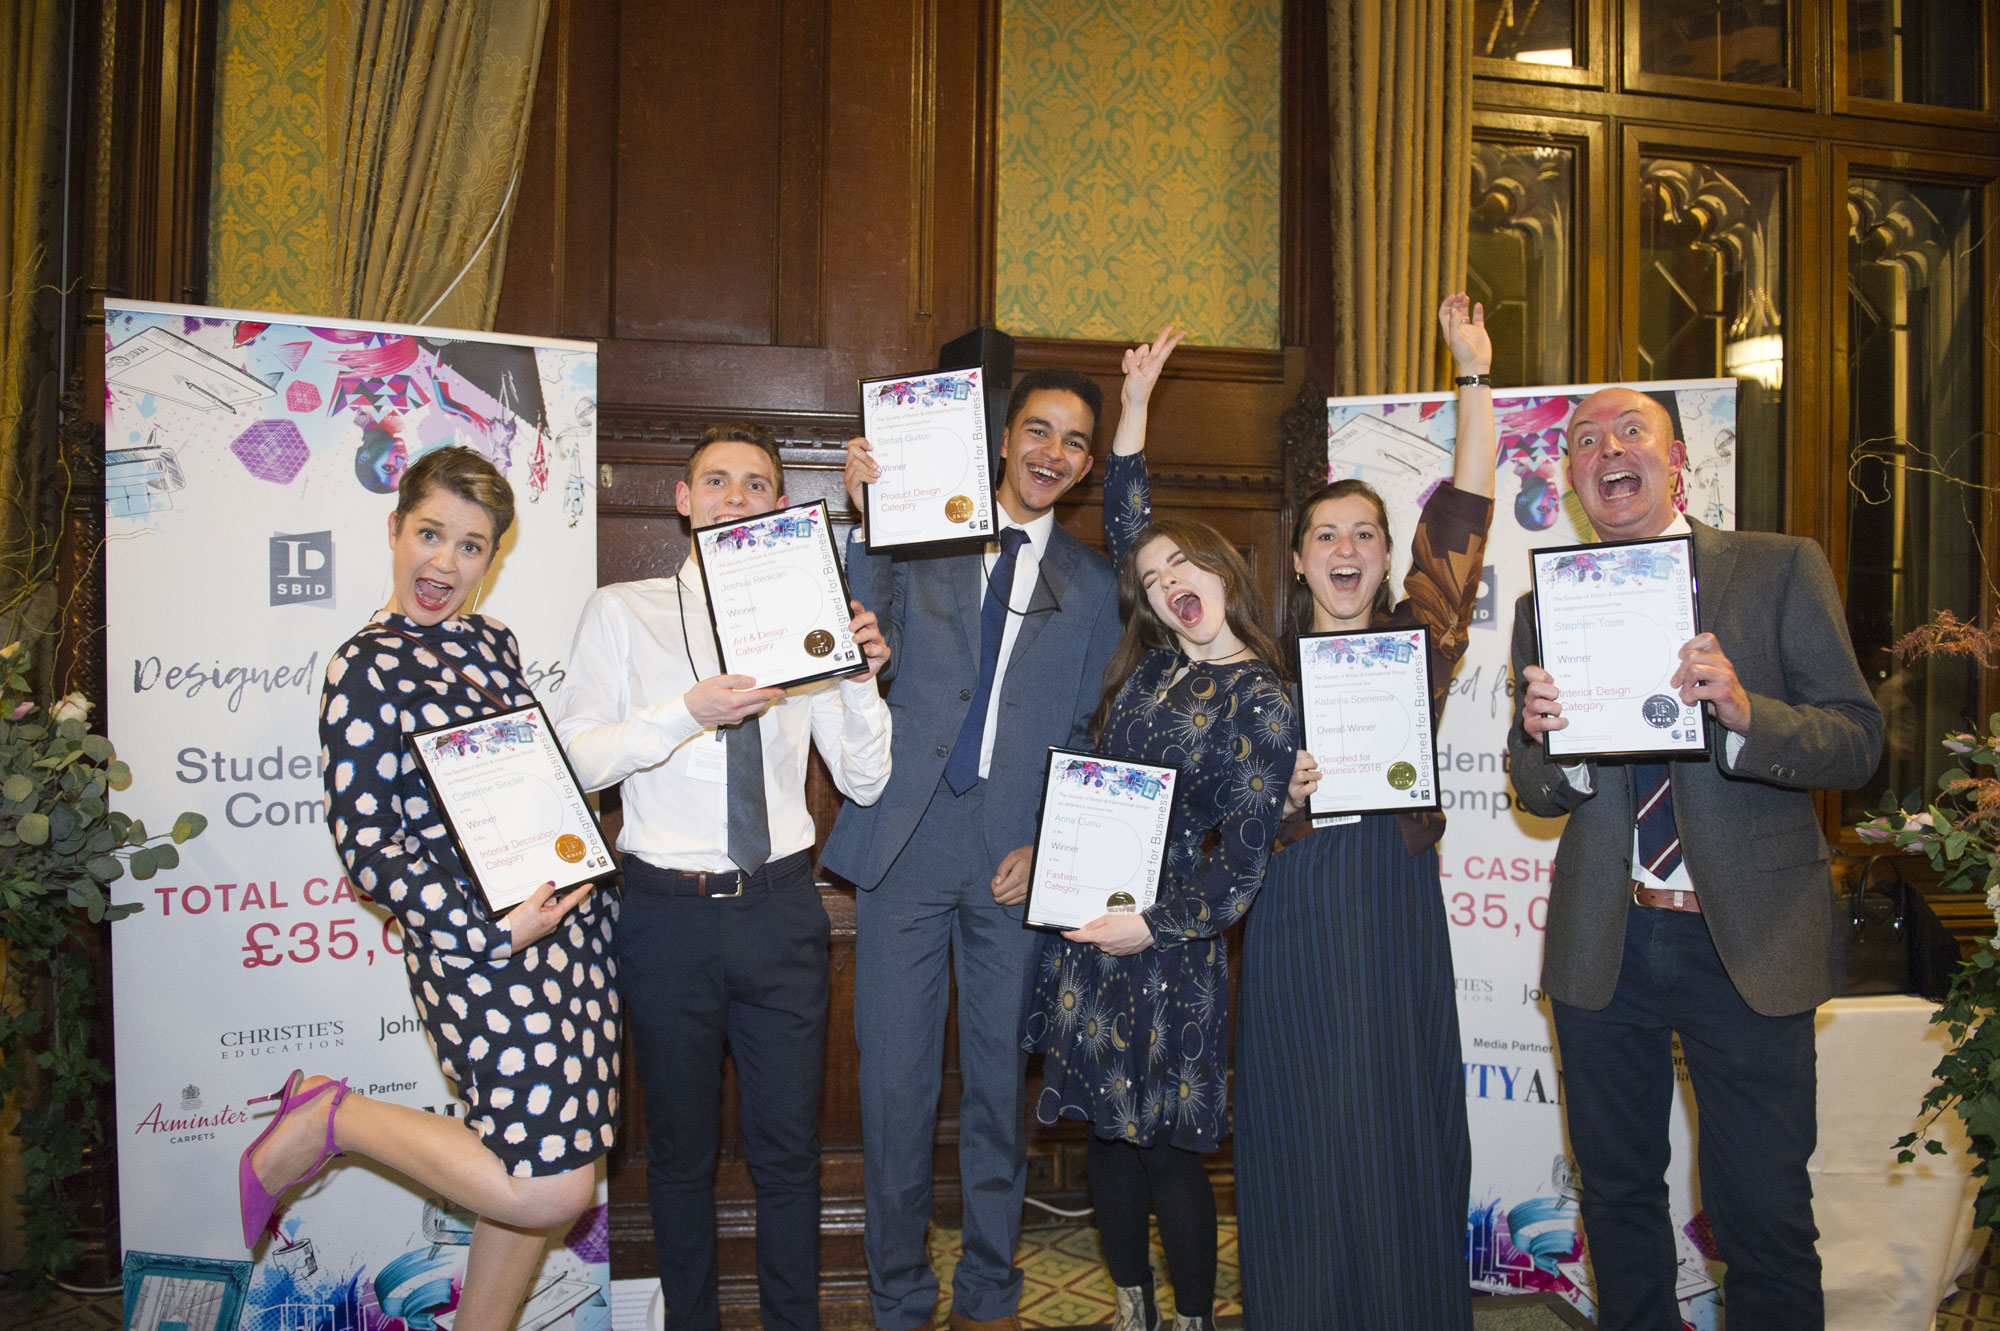 SBID student design competition Designed for Business Student Award winners